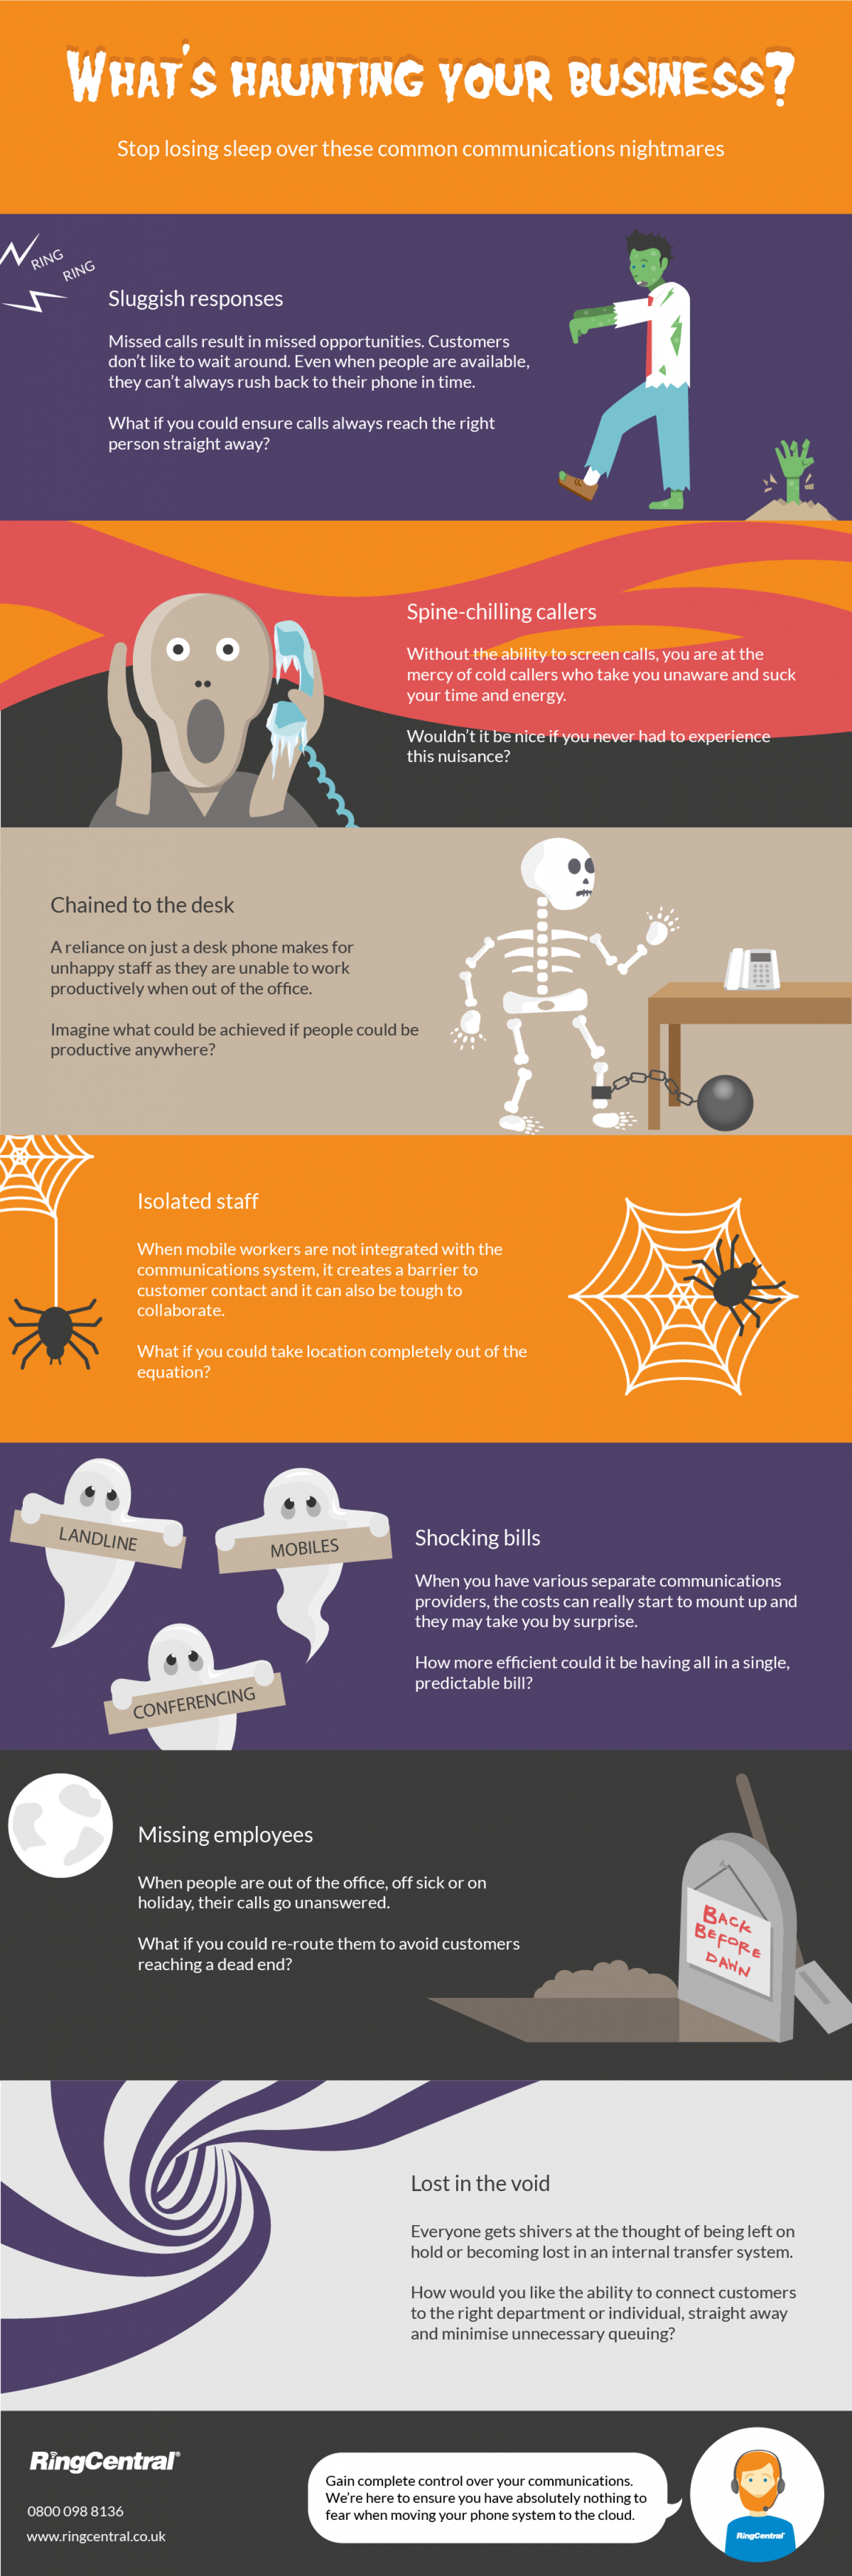 What's Haunting Your Business? [Infographic] Infographic